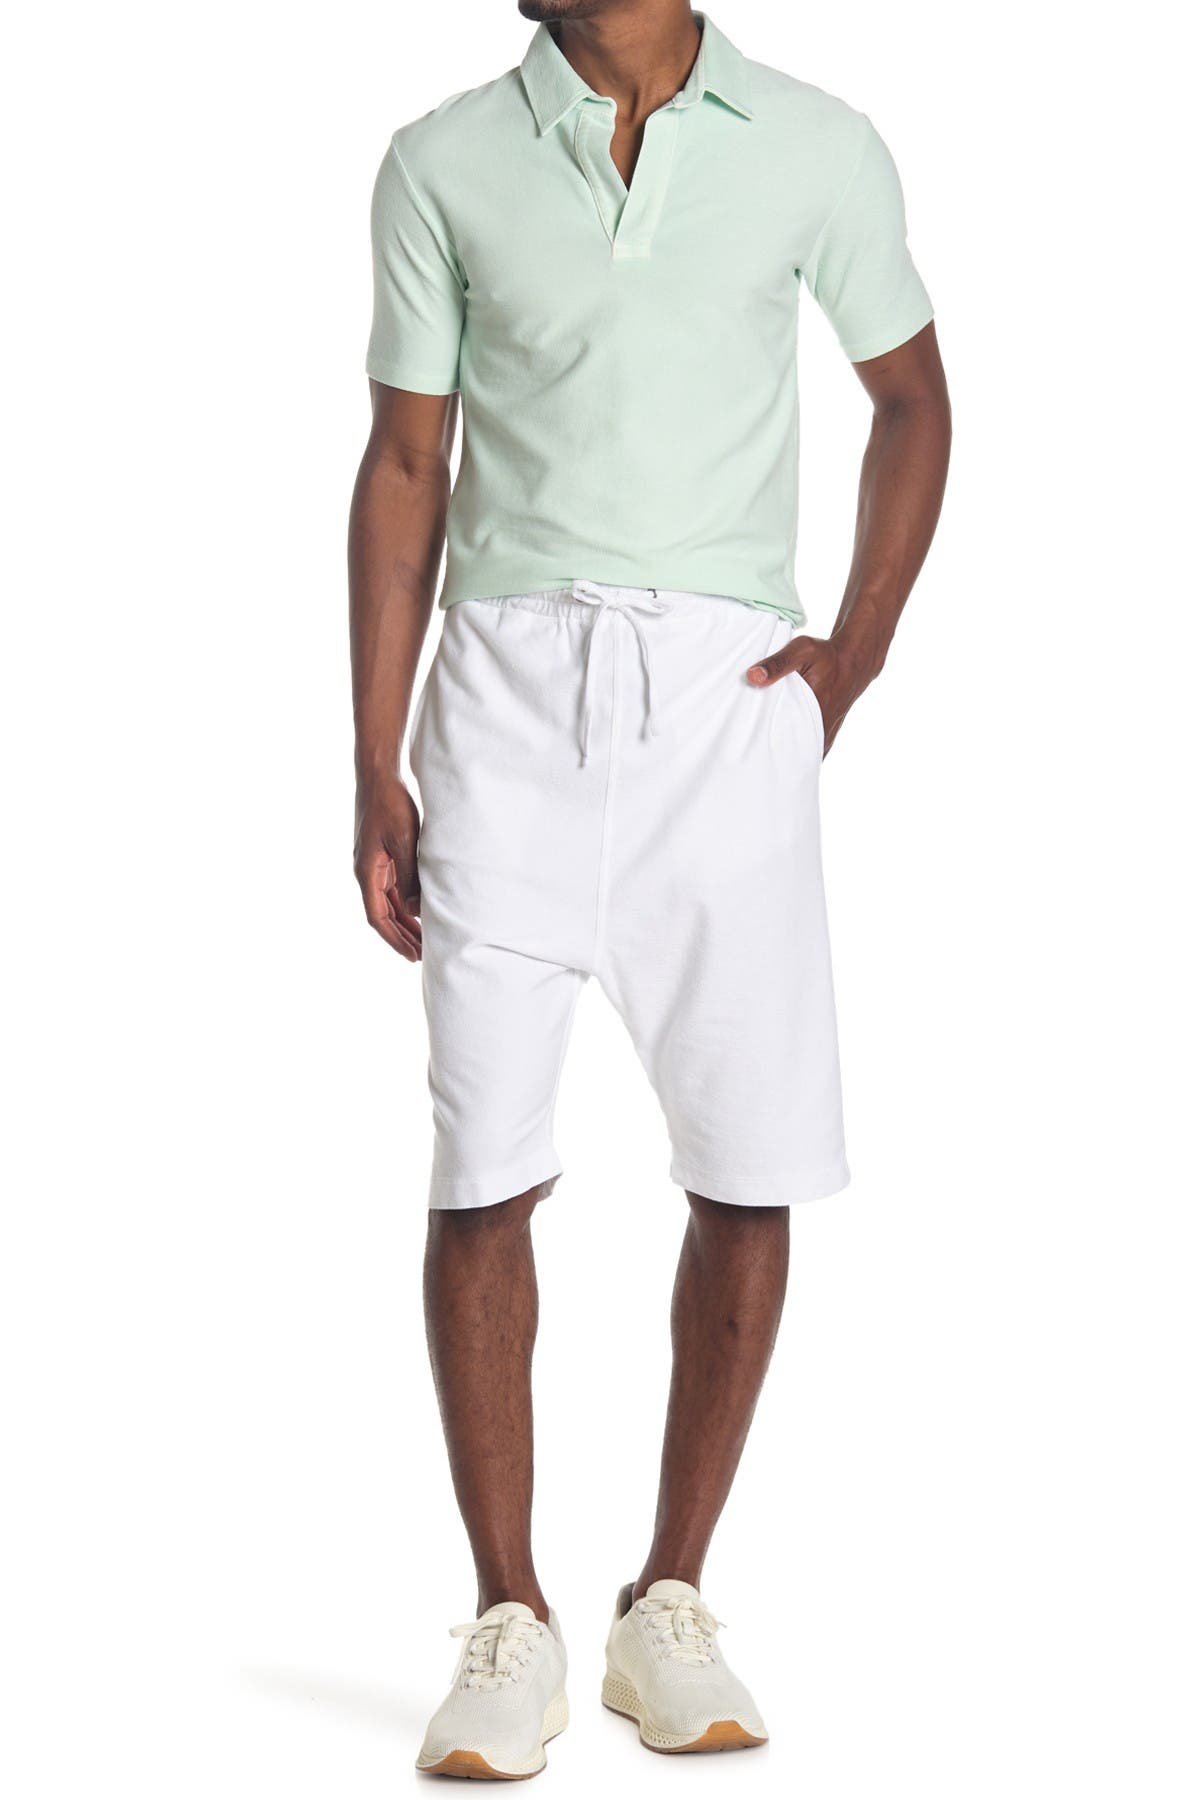 Image of Goodlife Sun Faded Reverso Apres Shorts